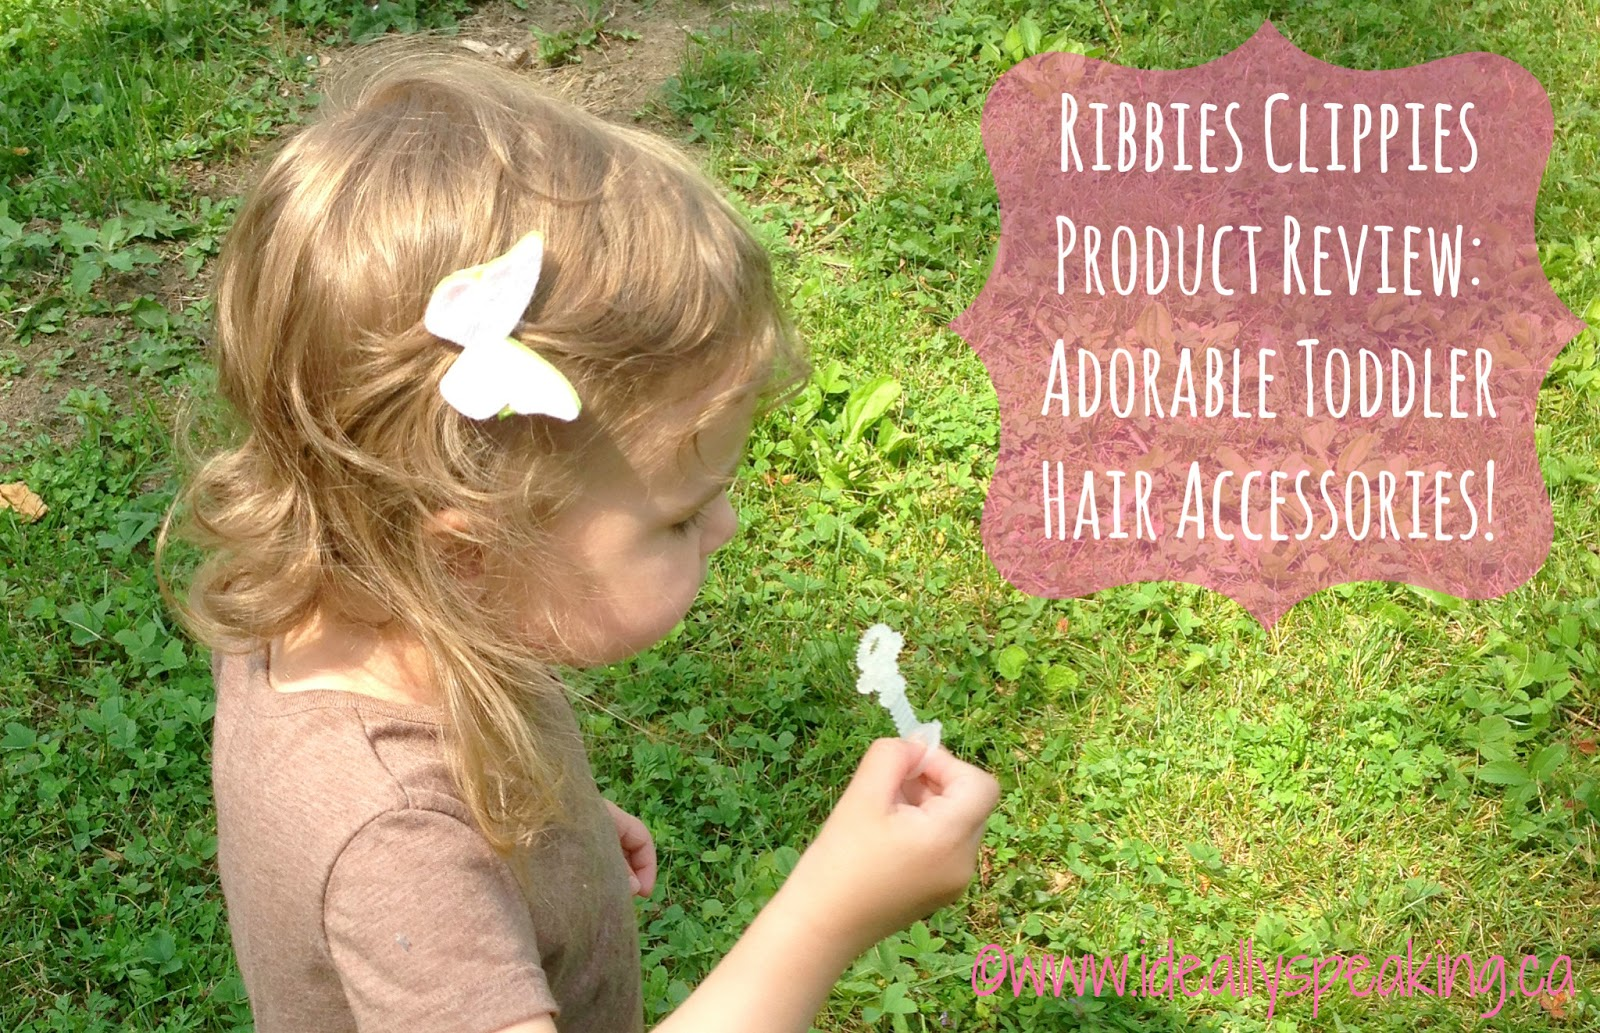 Ribbies Clippies Review - Adorable toddler hair accessories.